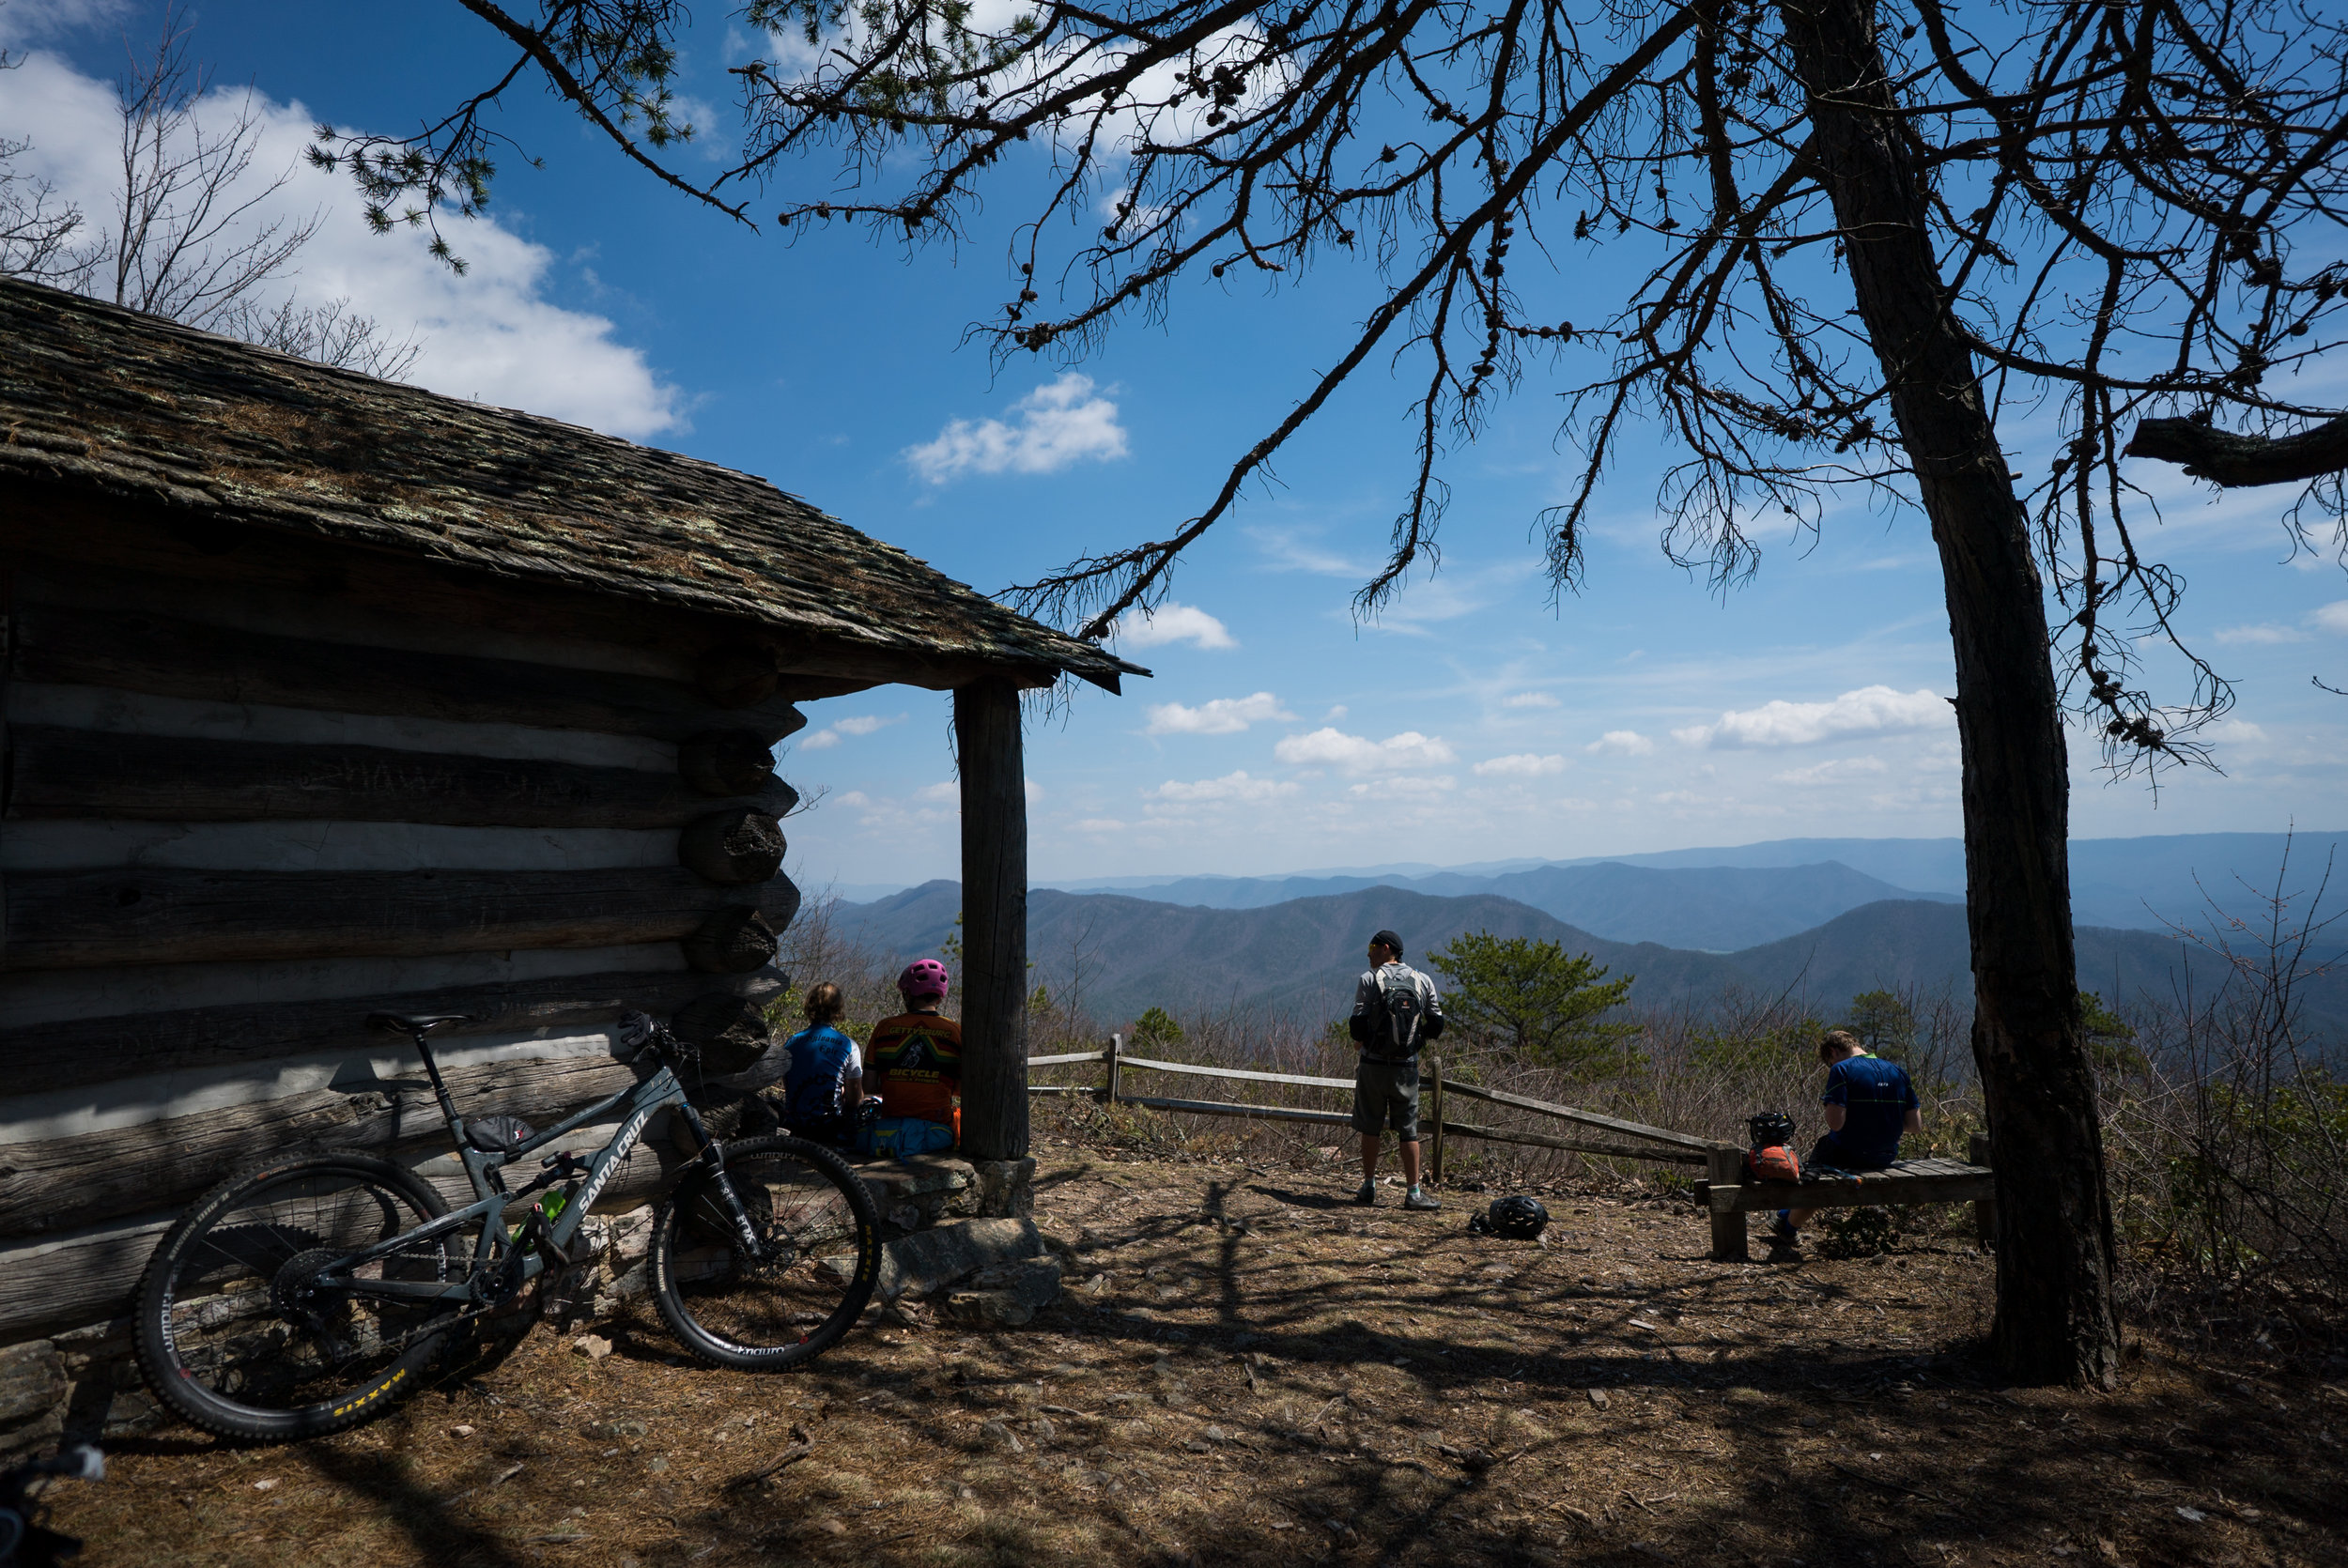 The cabin at the Tuscarora Overlook in Douthat State Park